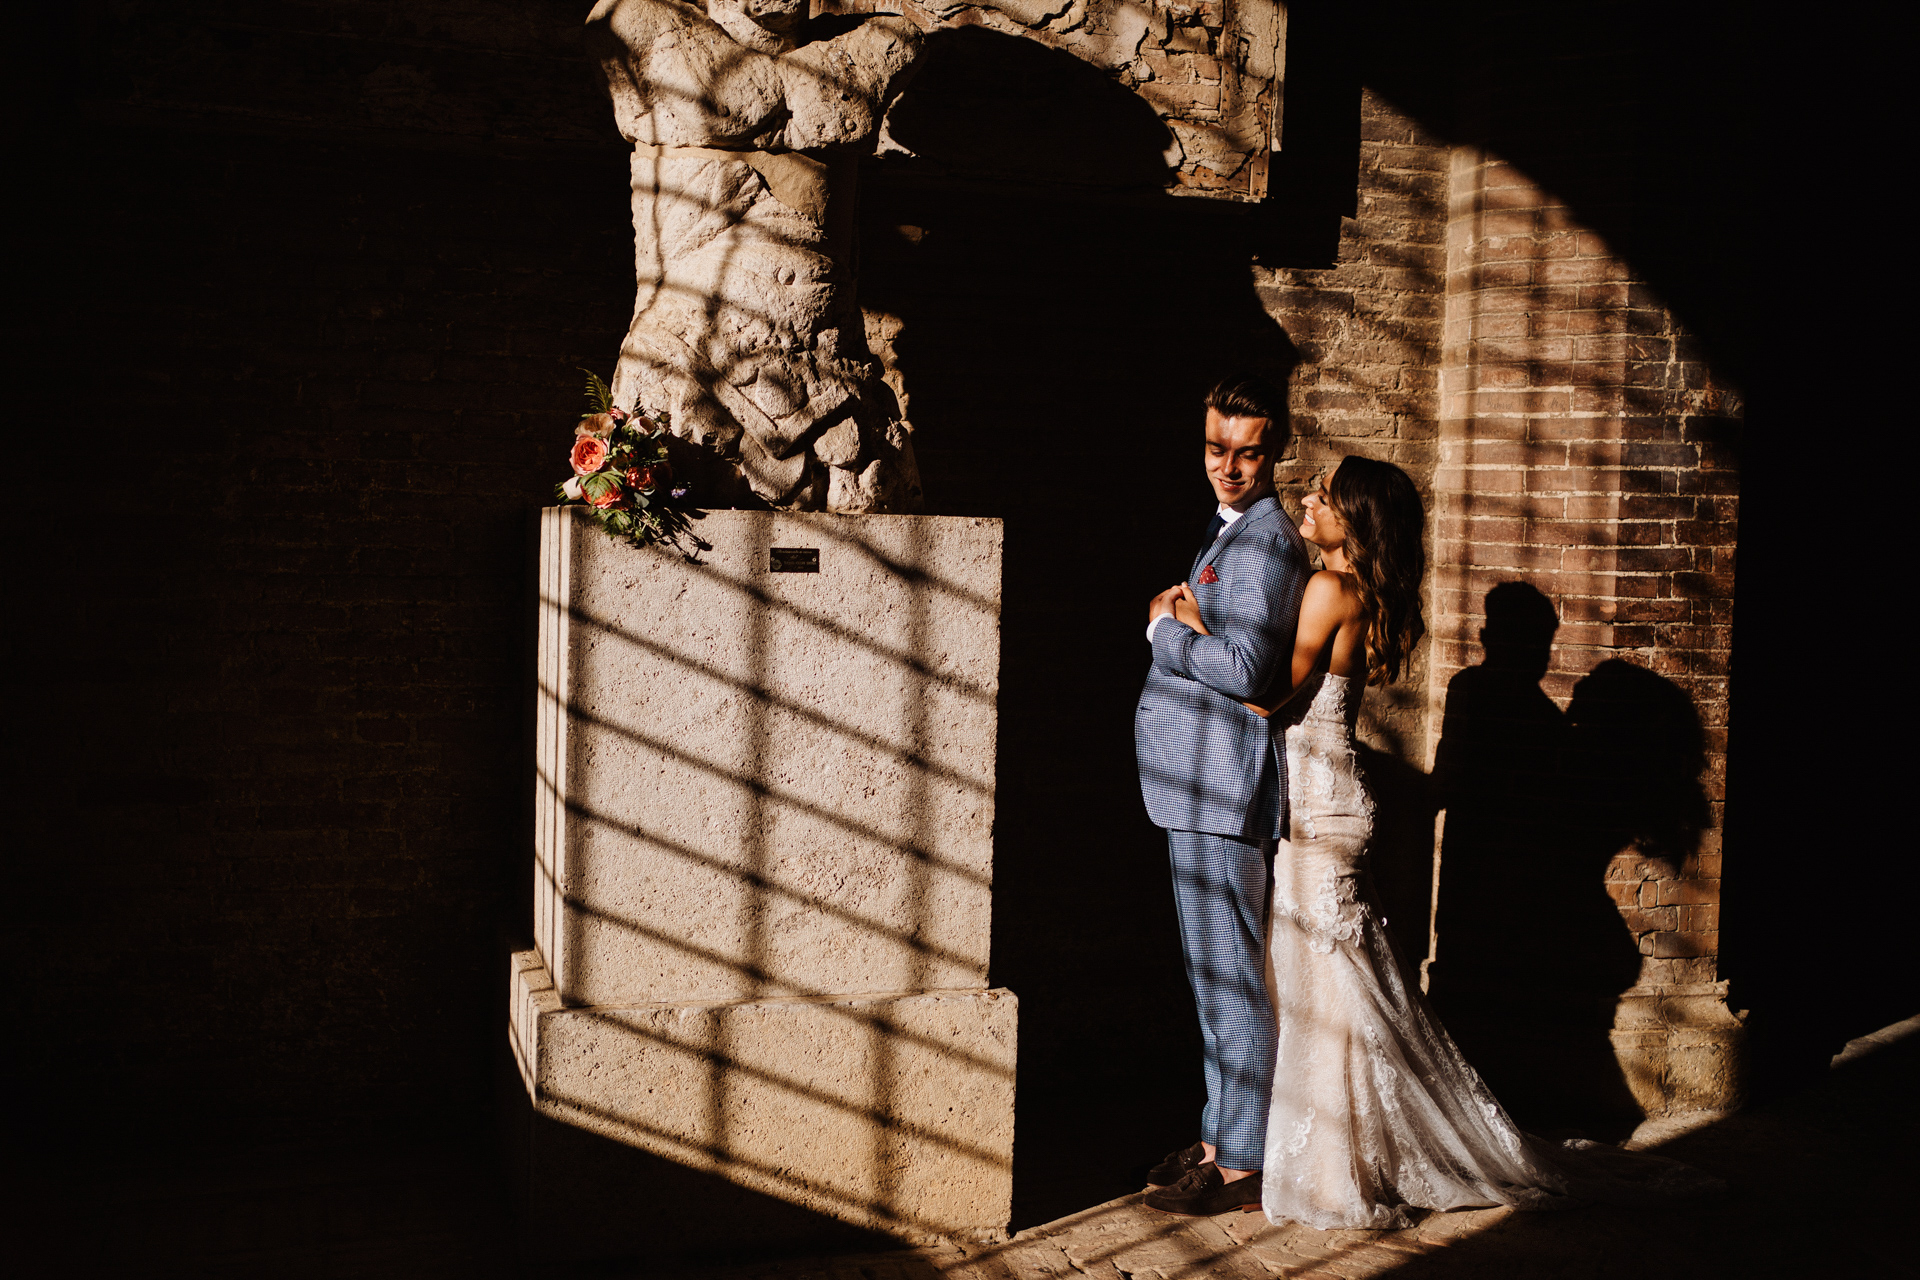 Piazza del Campo, Siena, Tuscany, Italy Elopement Couple Portraits | in the lights and shadows of the public palace